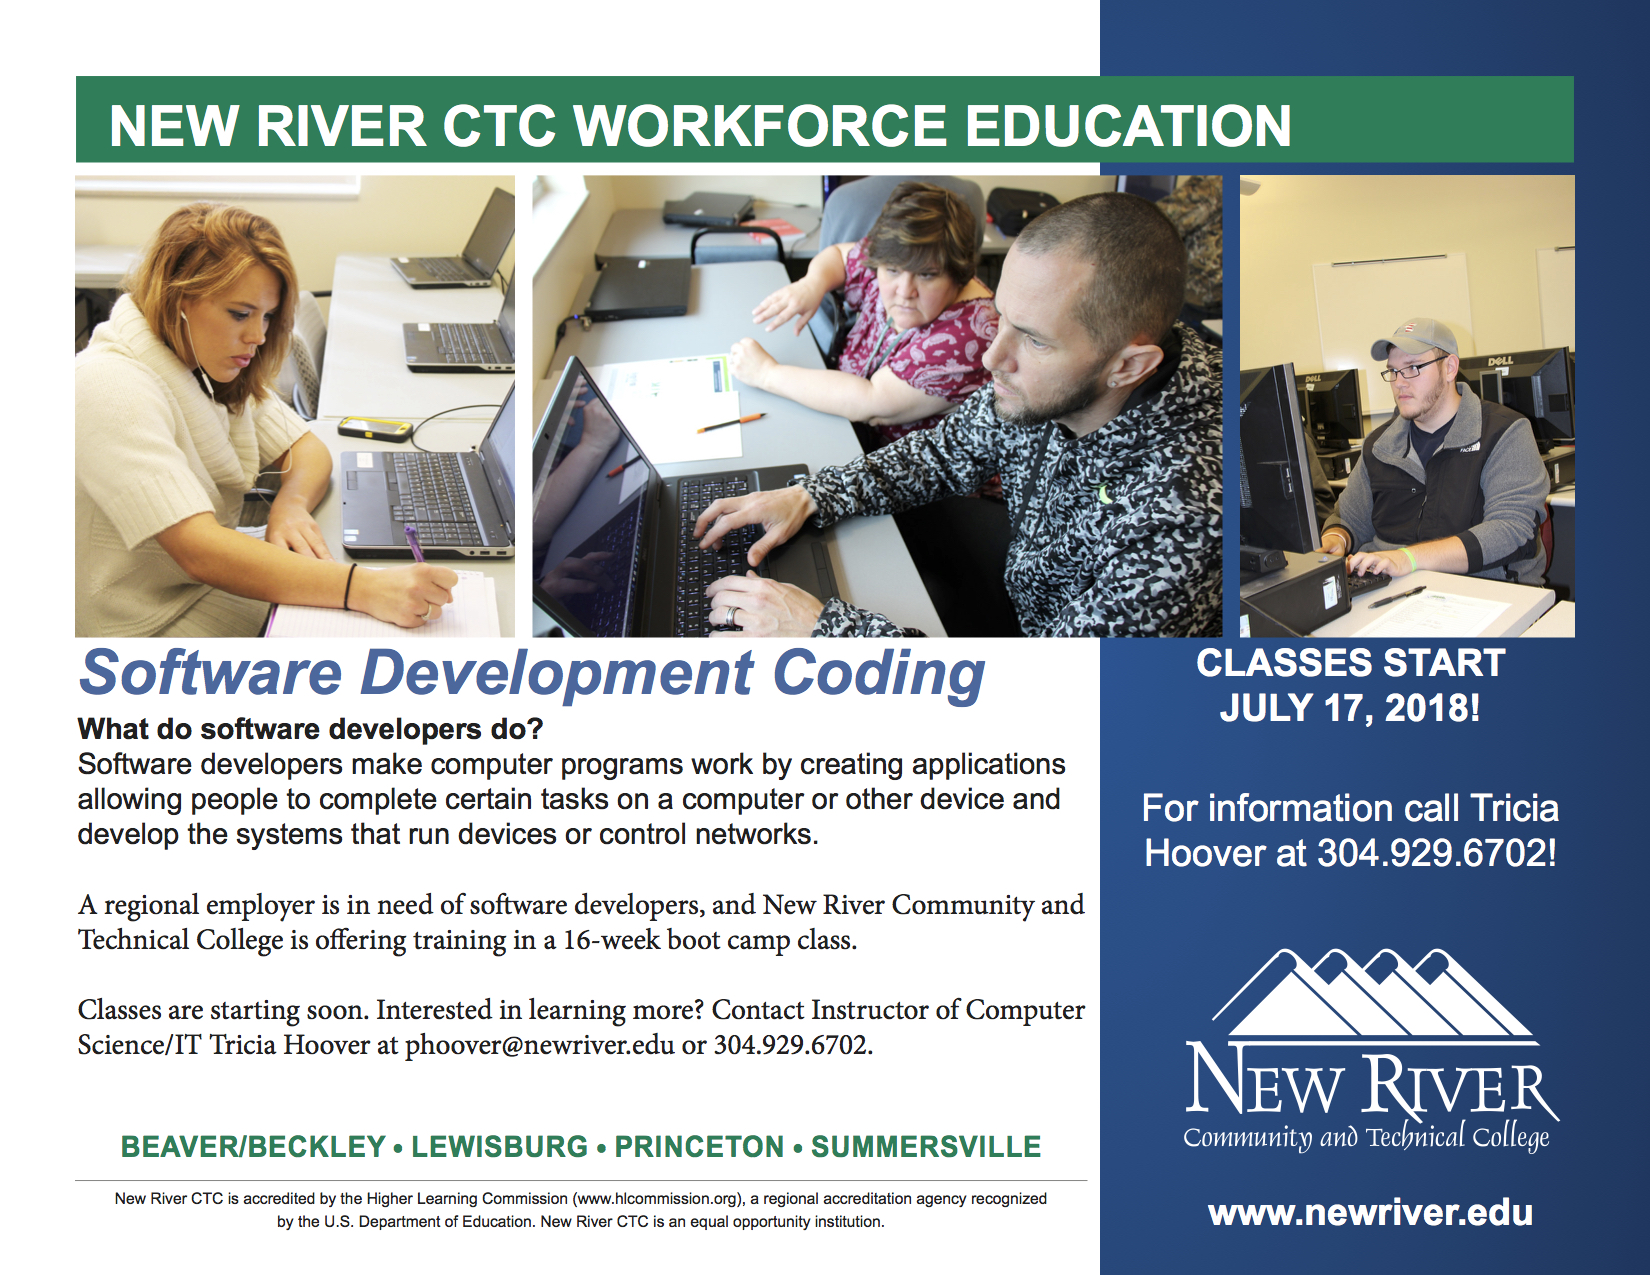 Software Development Coding Boot Camp Starting In July At